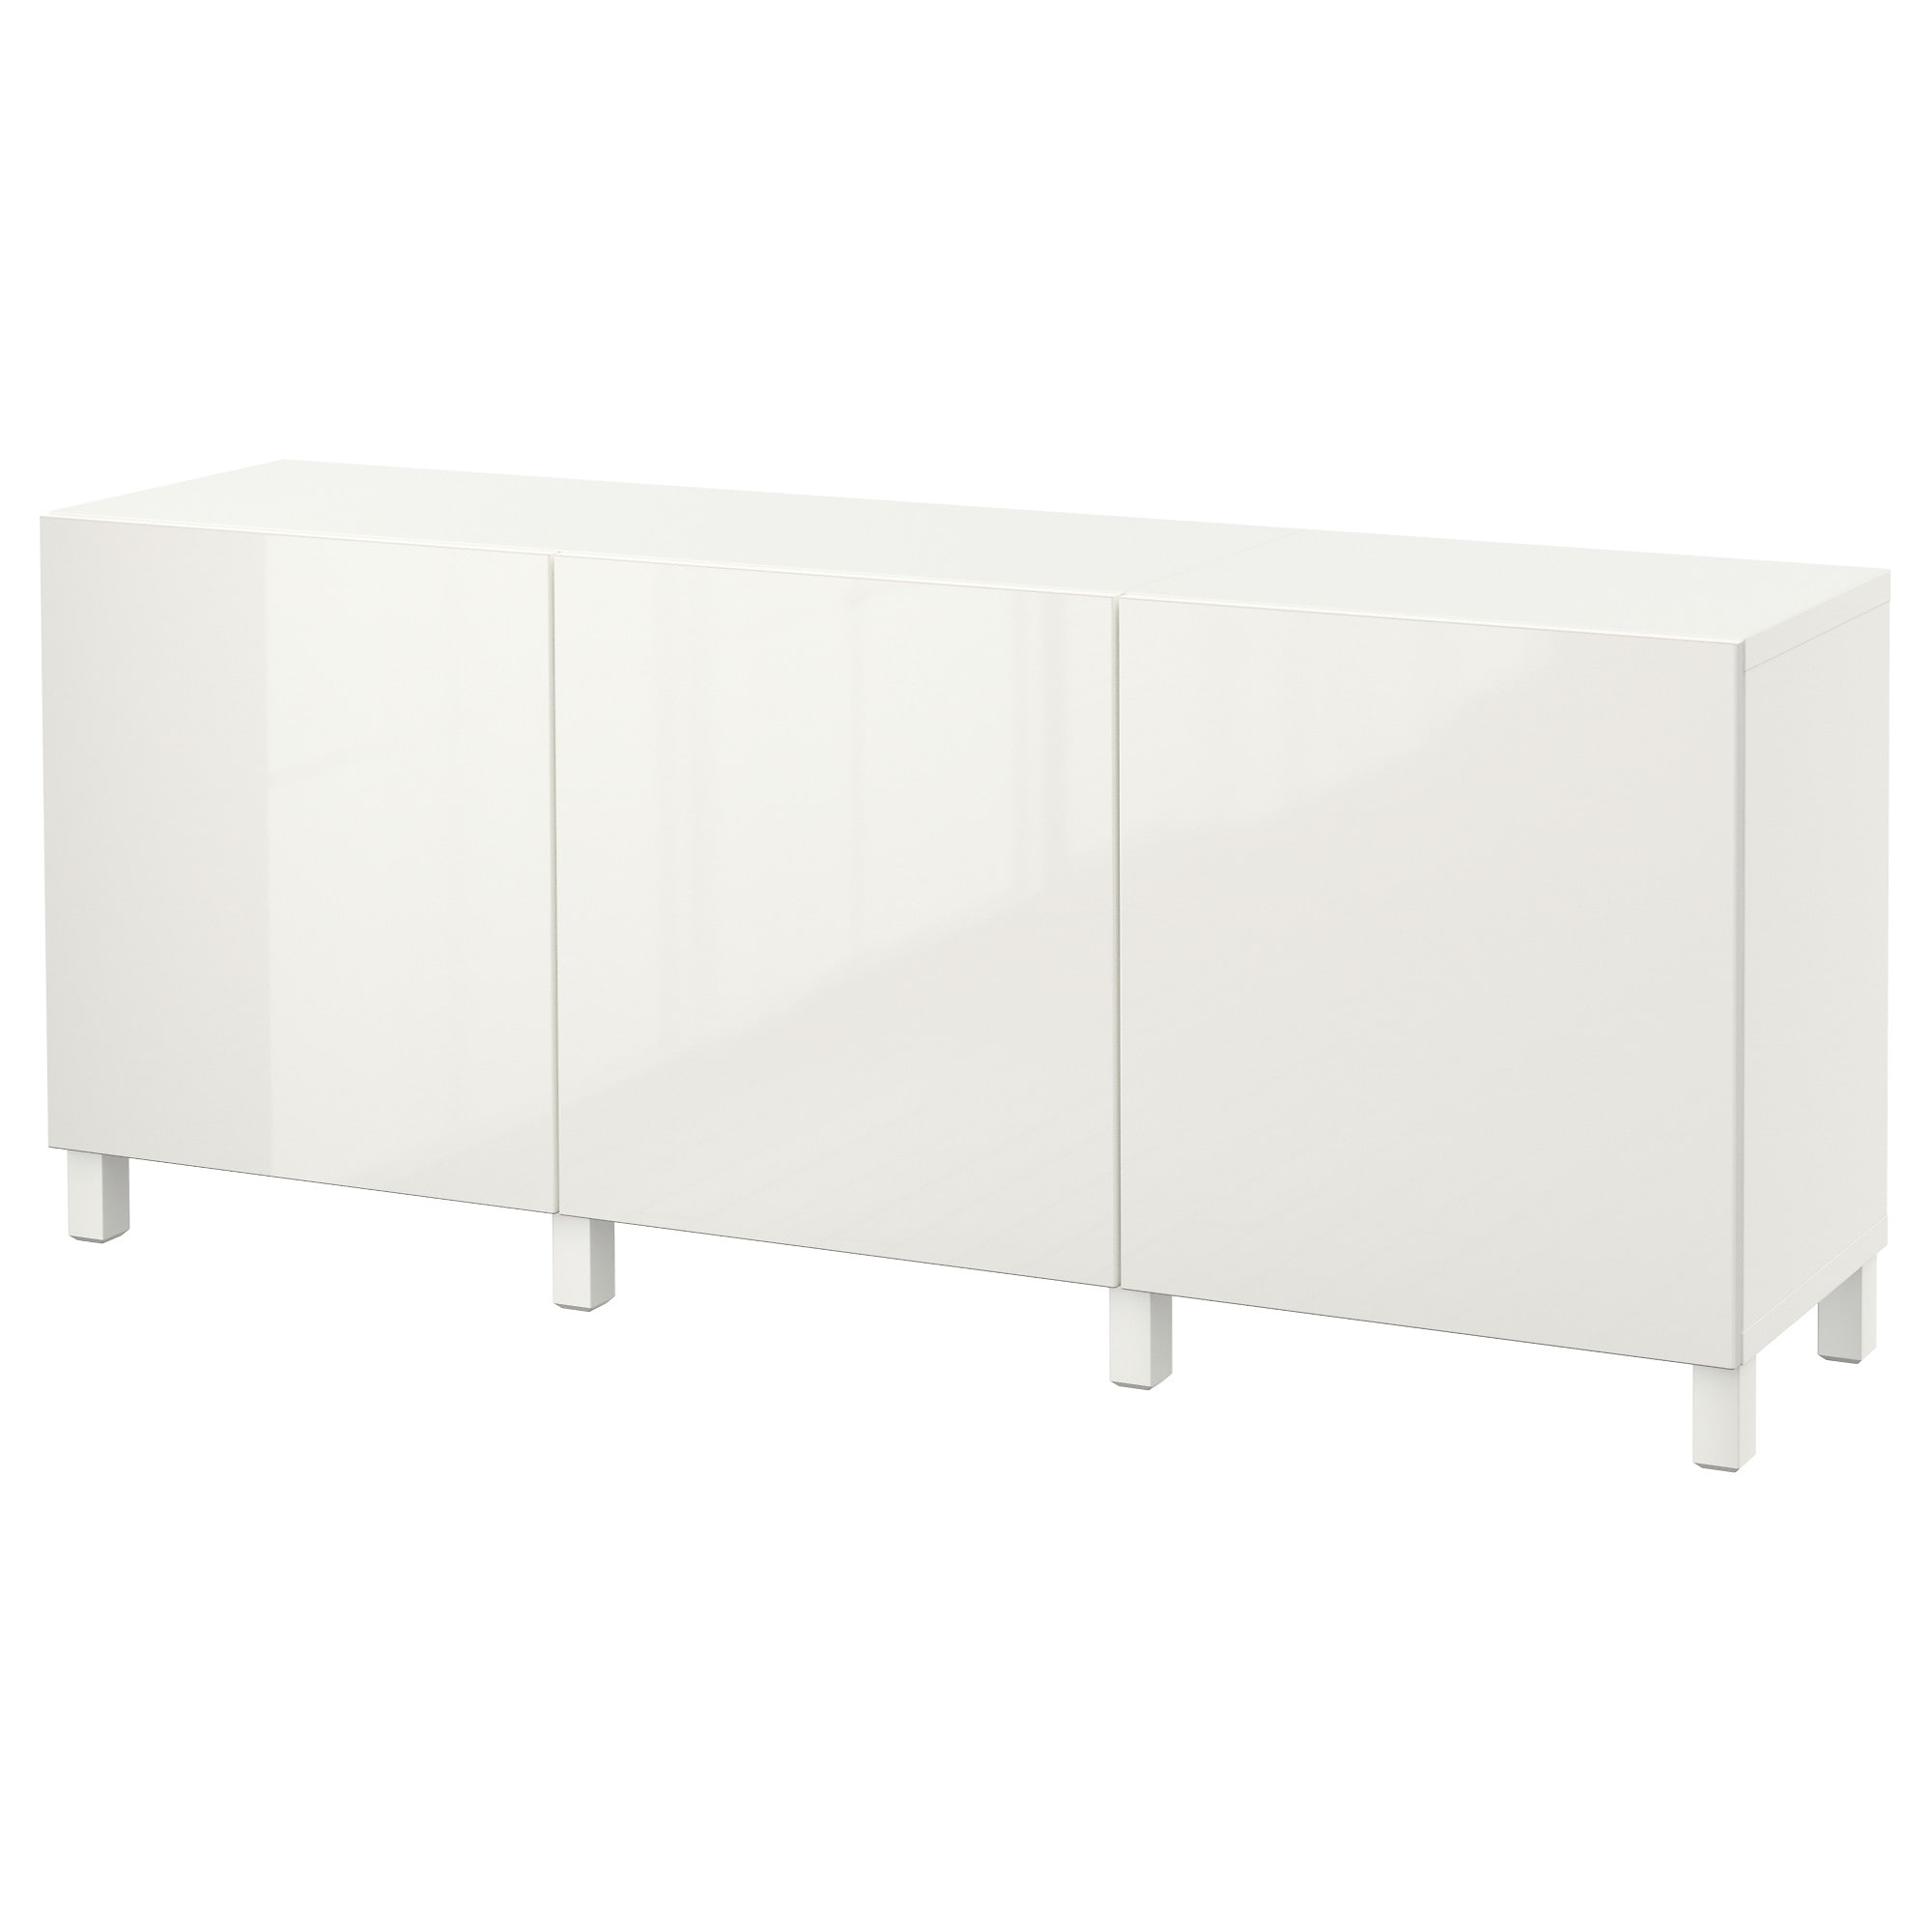 Best Storage Combination With Doors White Selsviken High Gloss White Width